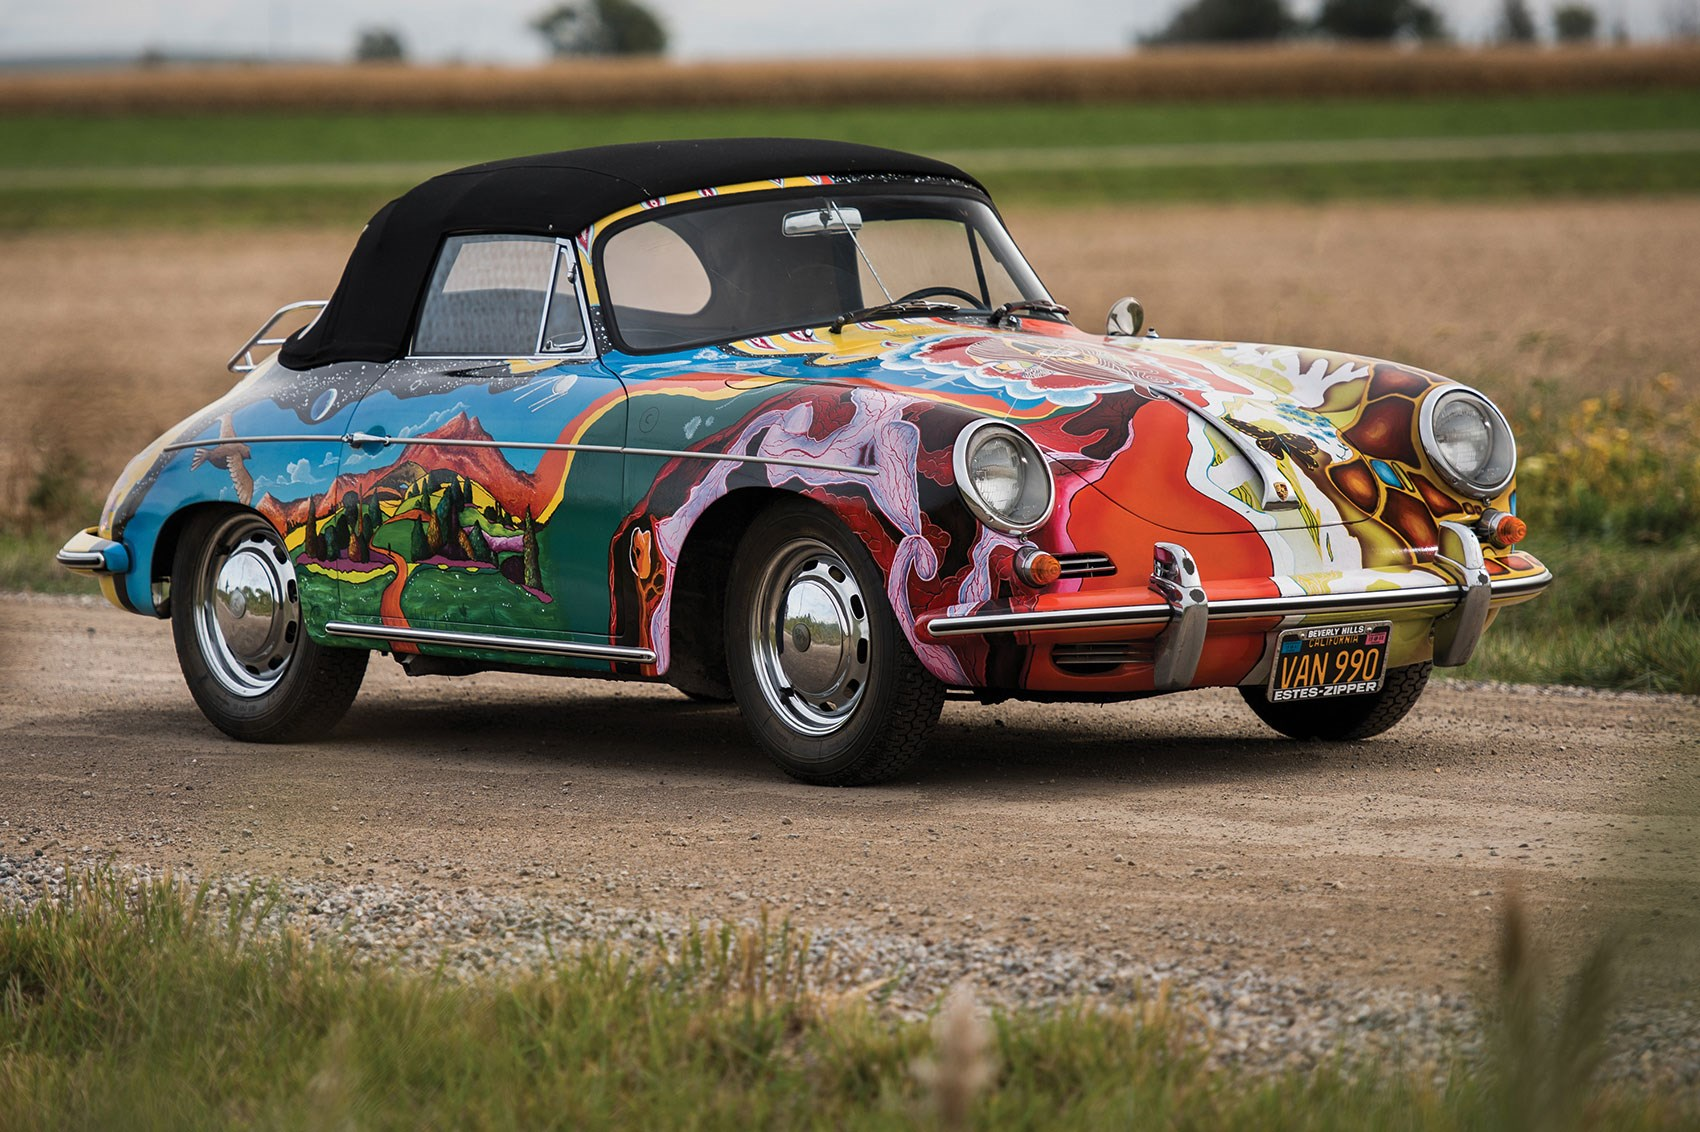 Janis Joplin S Psychedelic Porsche Sold At Auction For 163 1